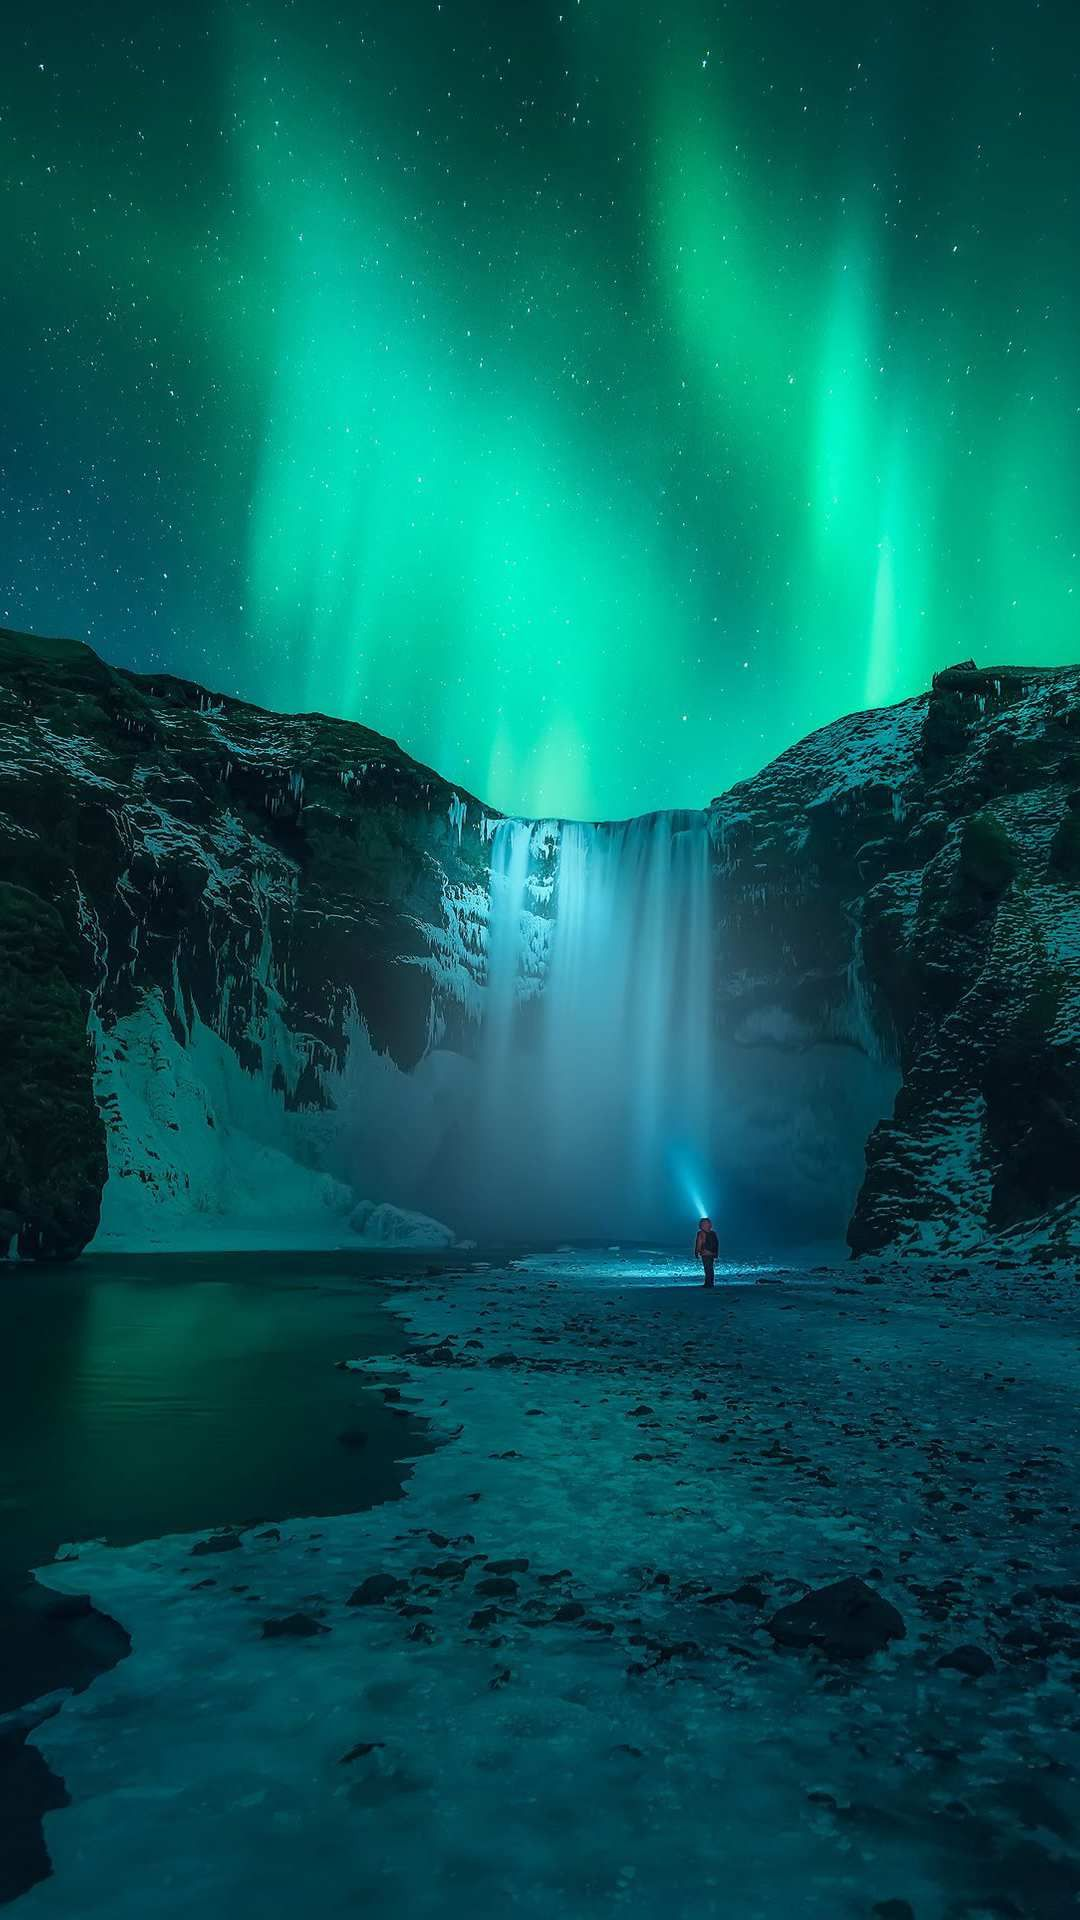 Iceland Waterfall Aurora in Sky iPhone Wallpaper iPhone